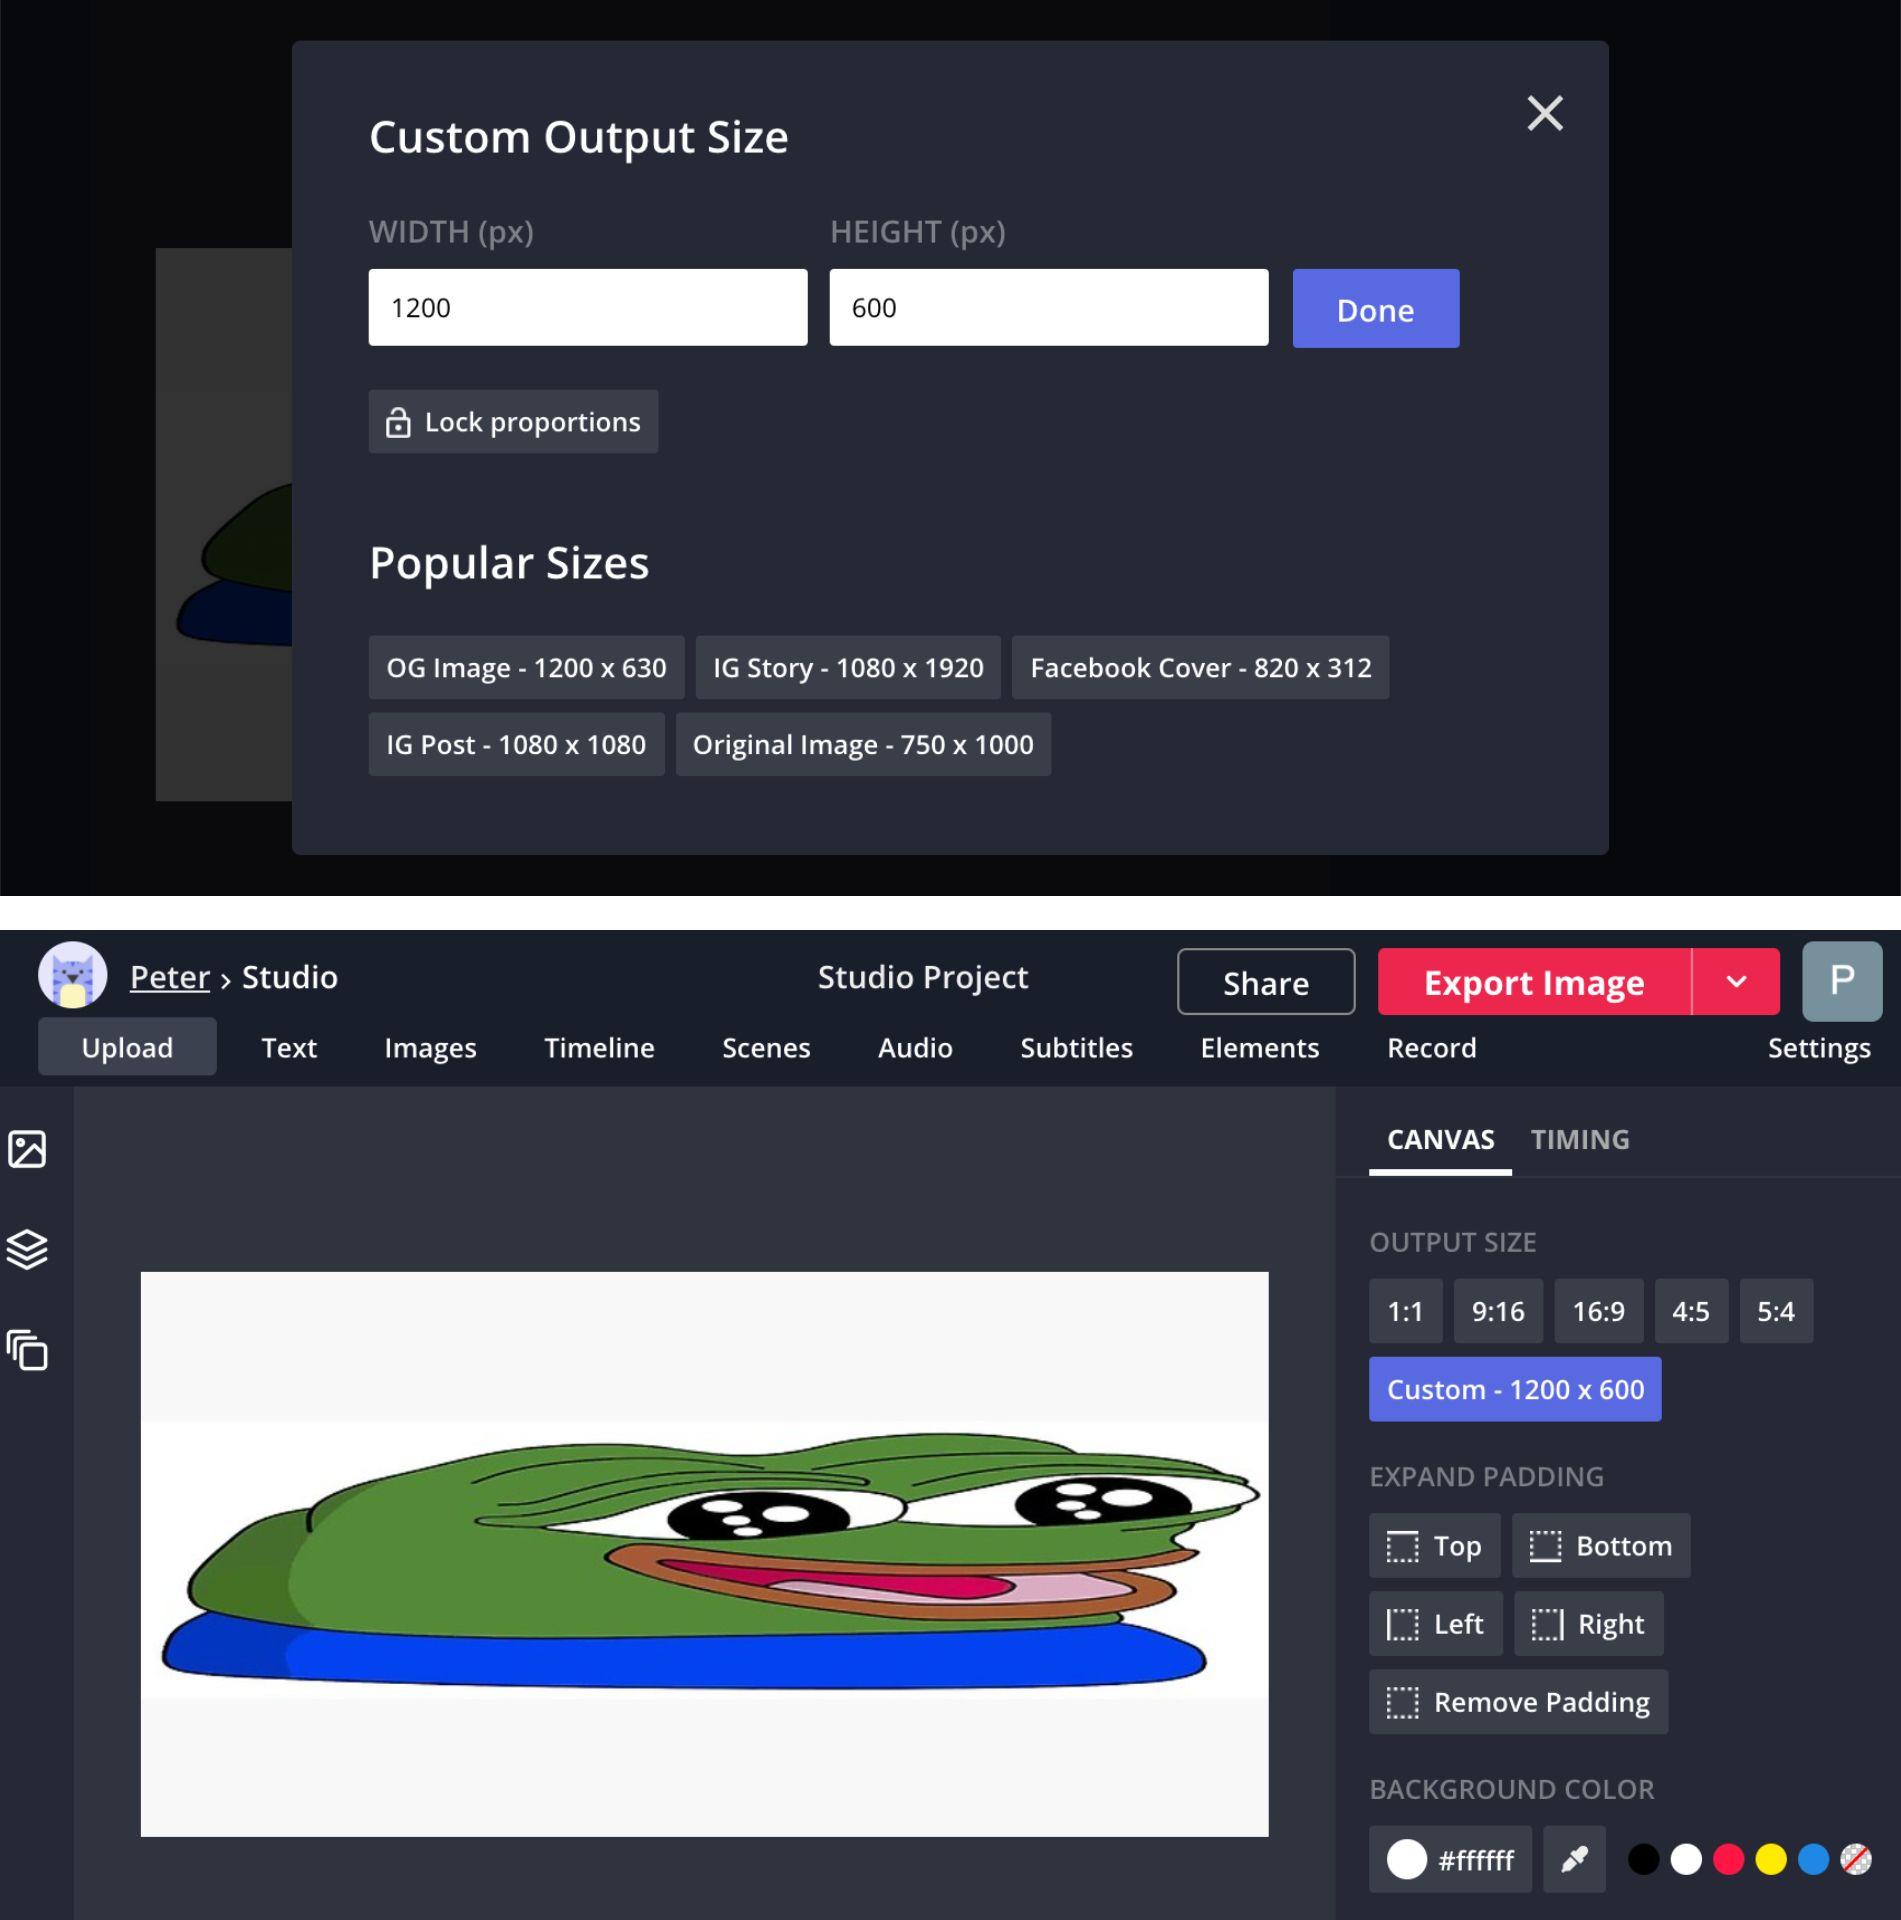 Screenshots demonstrating how to resize images to 2:1 in the Kapwing Studio.